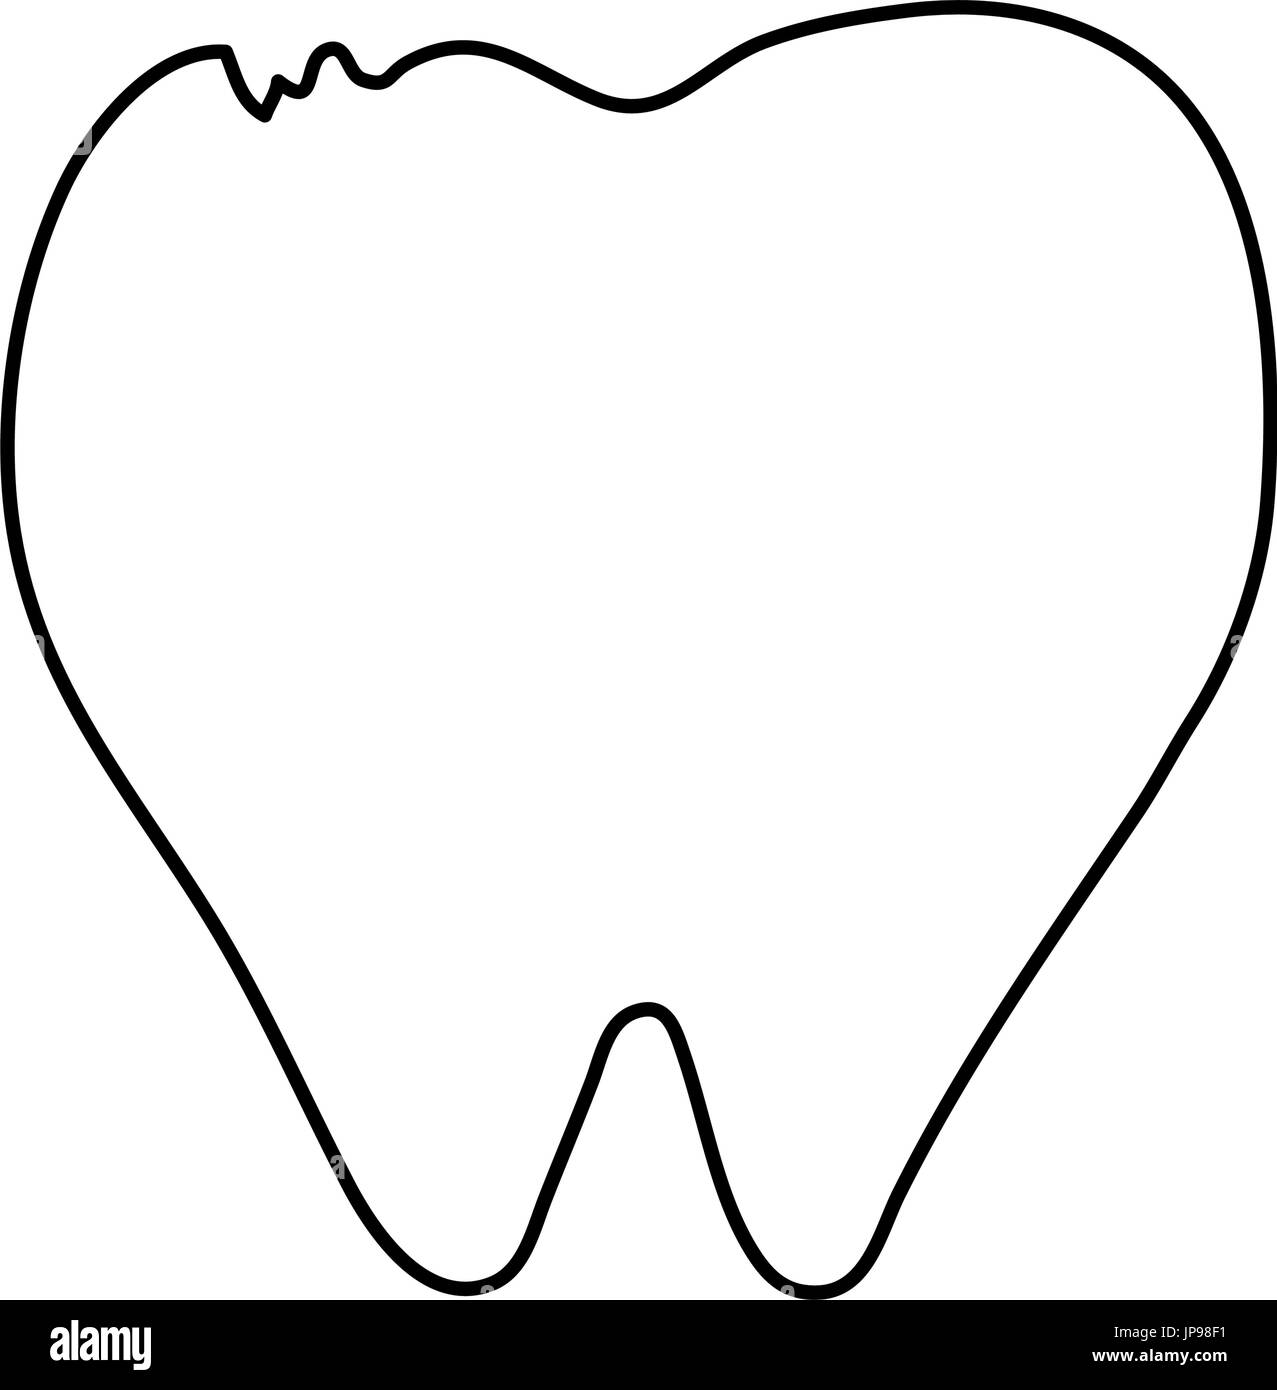 molar tooth healthcare related icon image - Stock Image